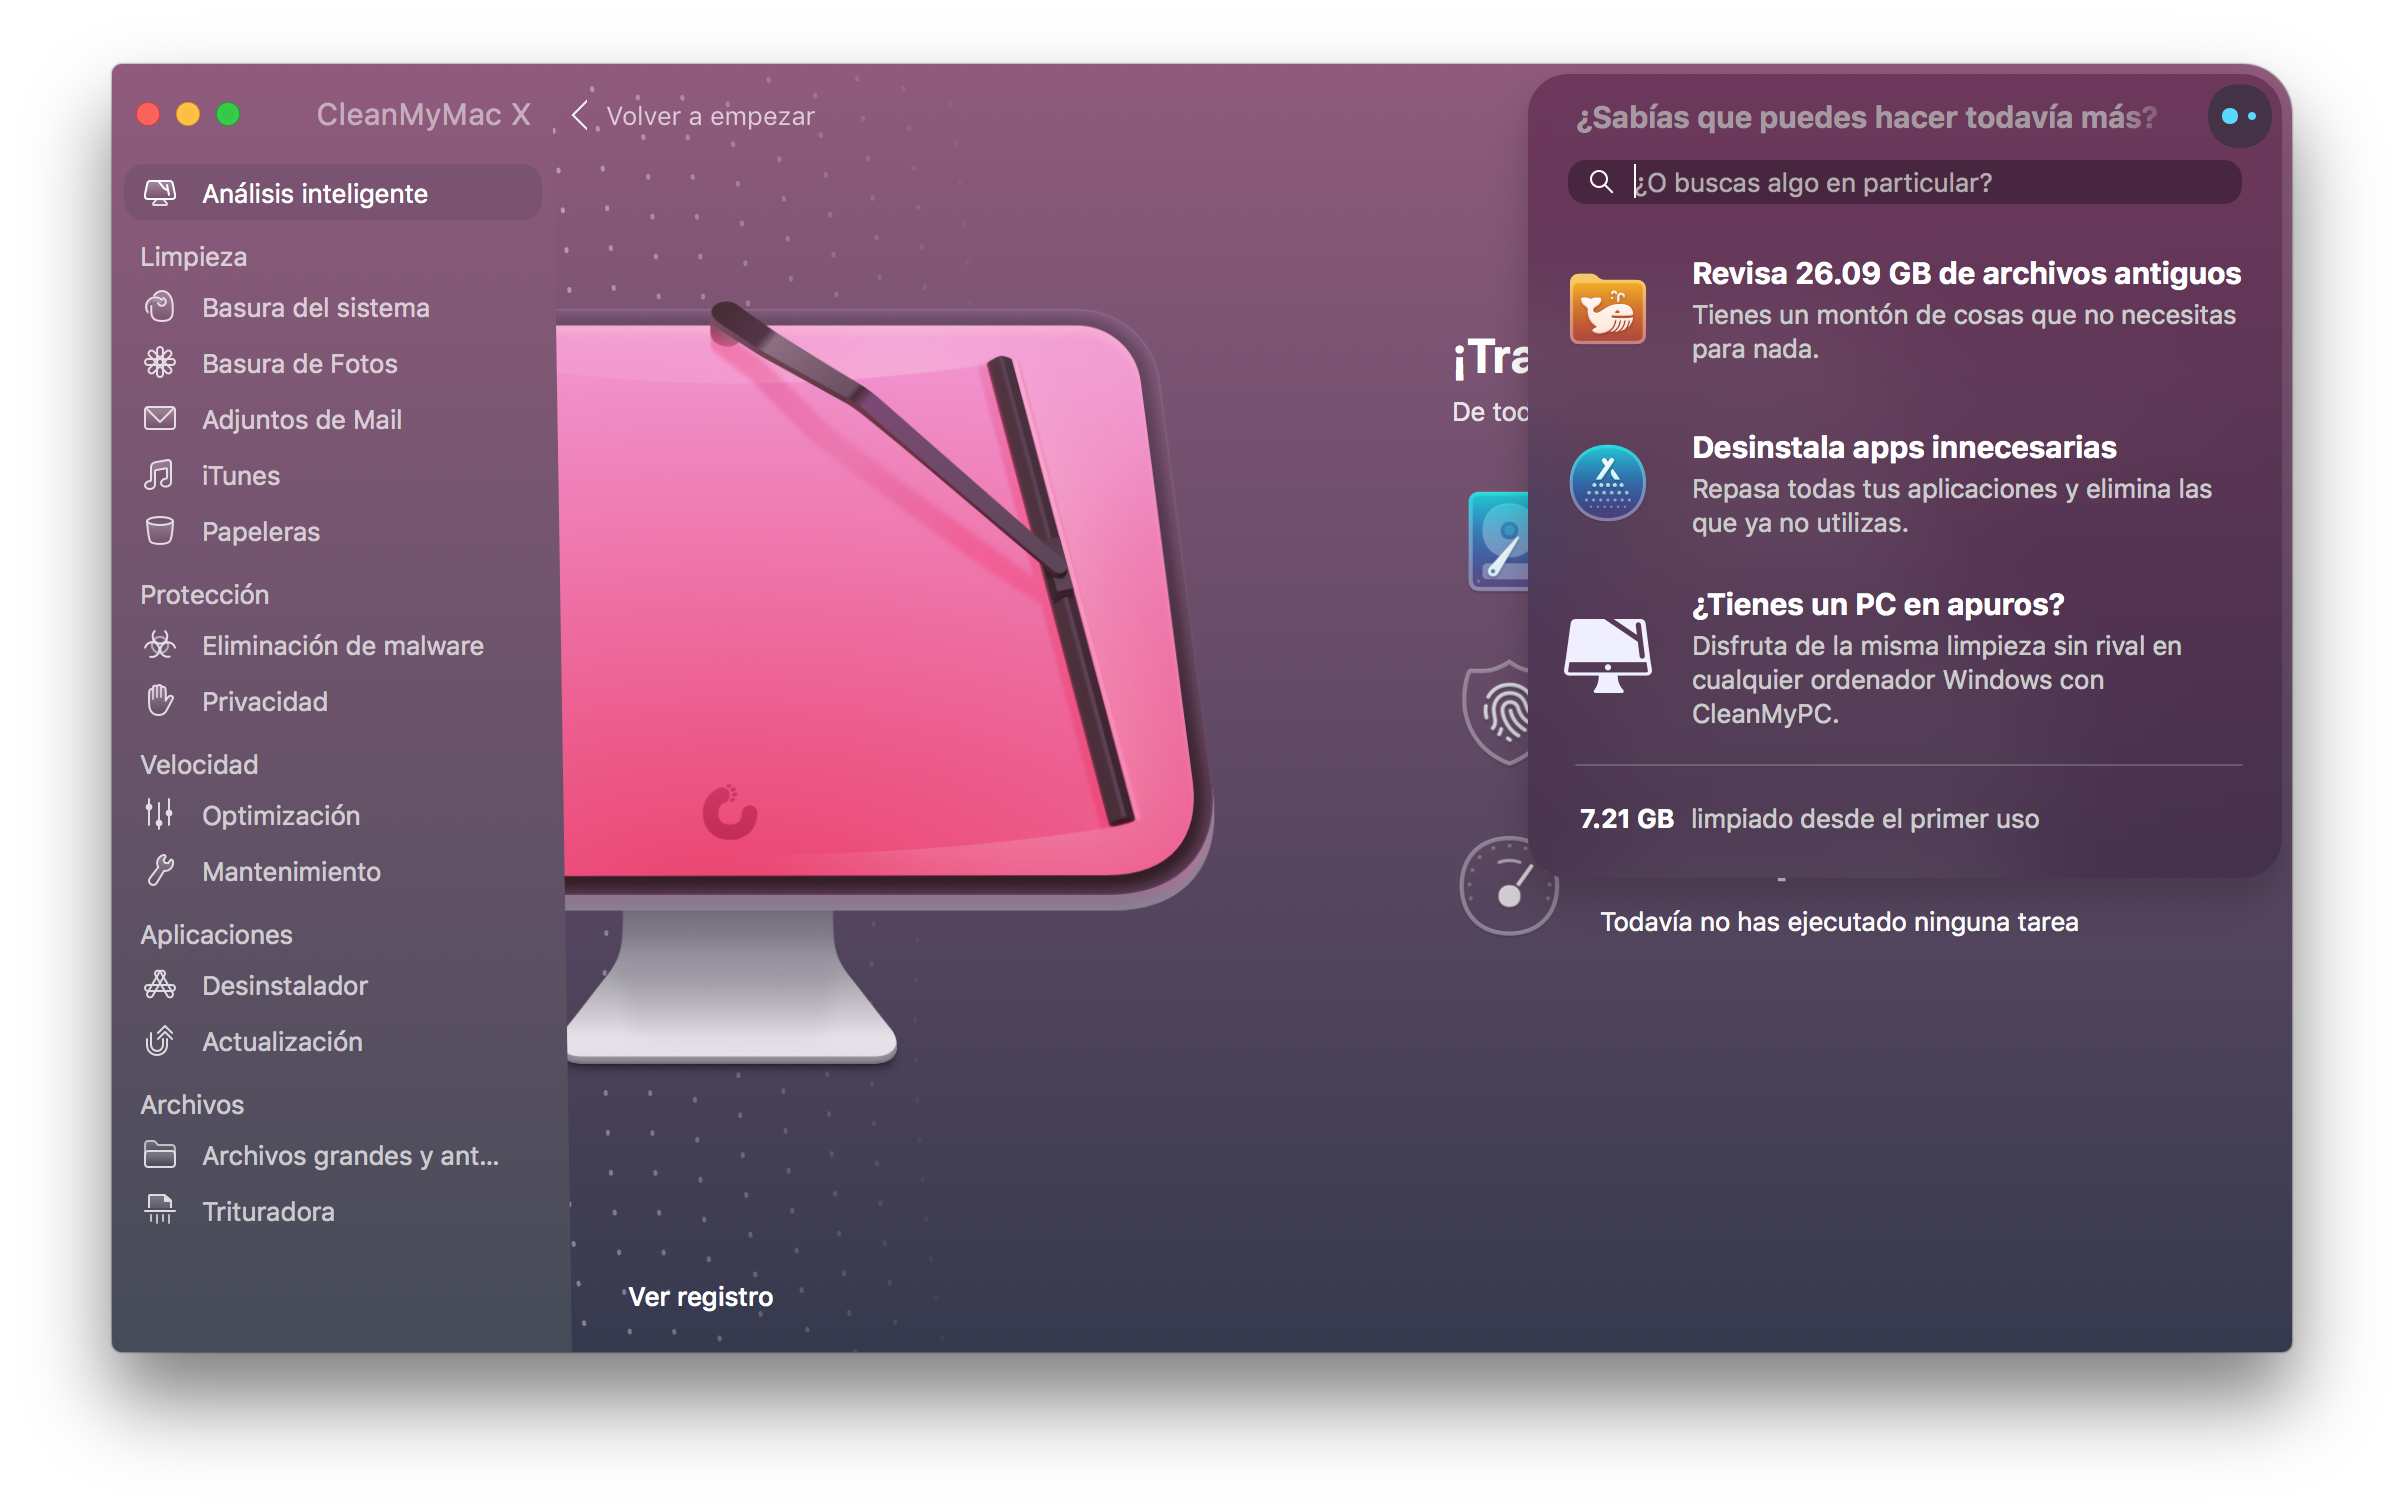 CleanMyMac X - Asistente